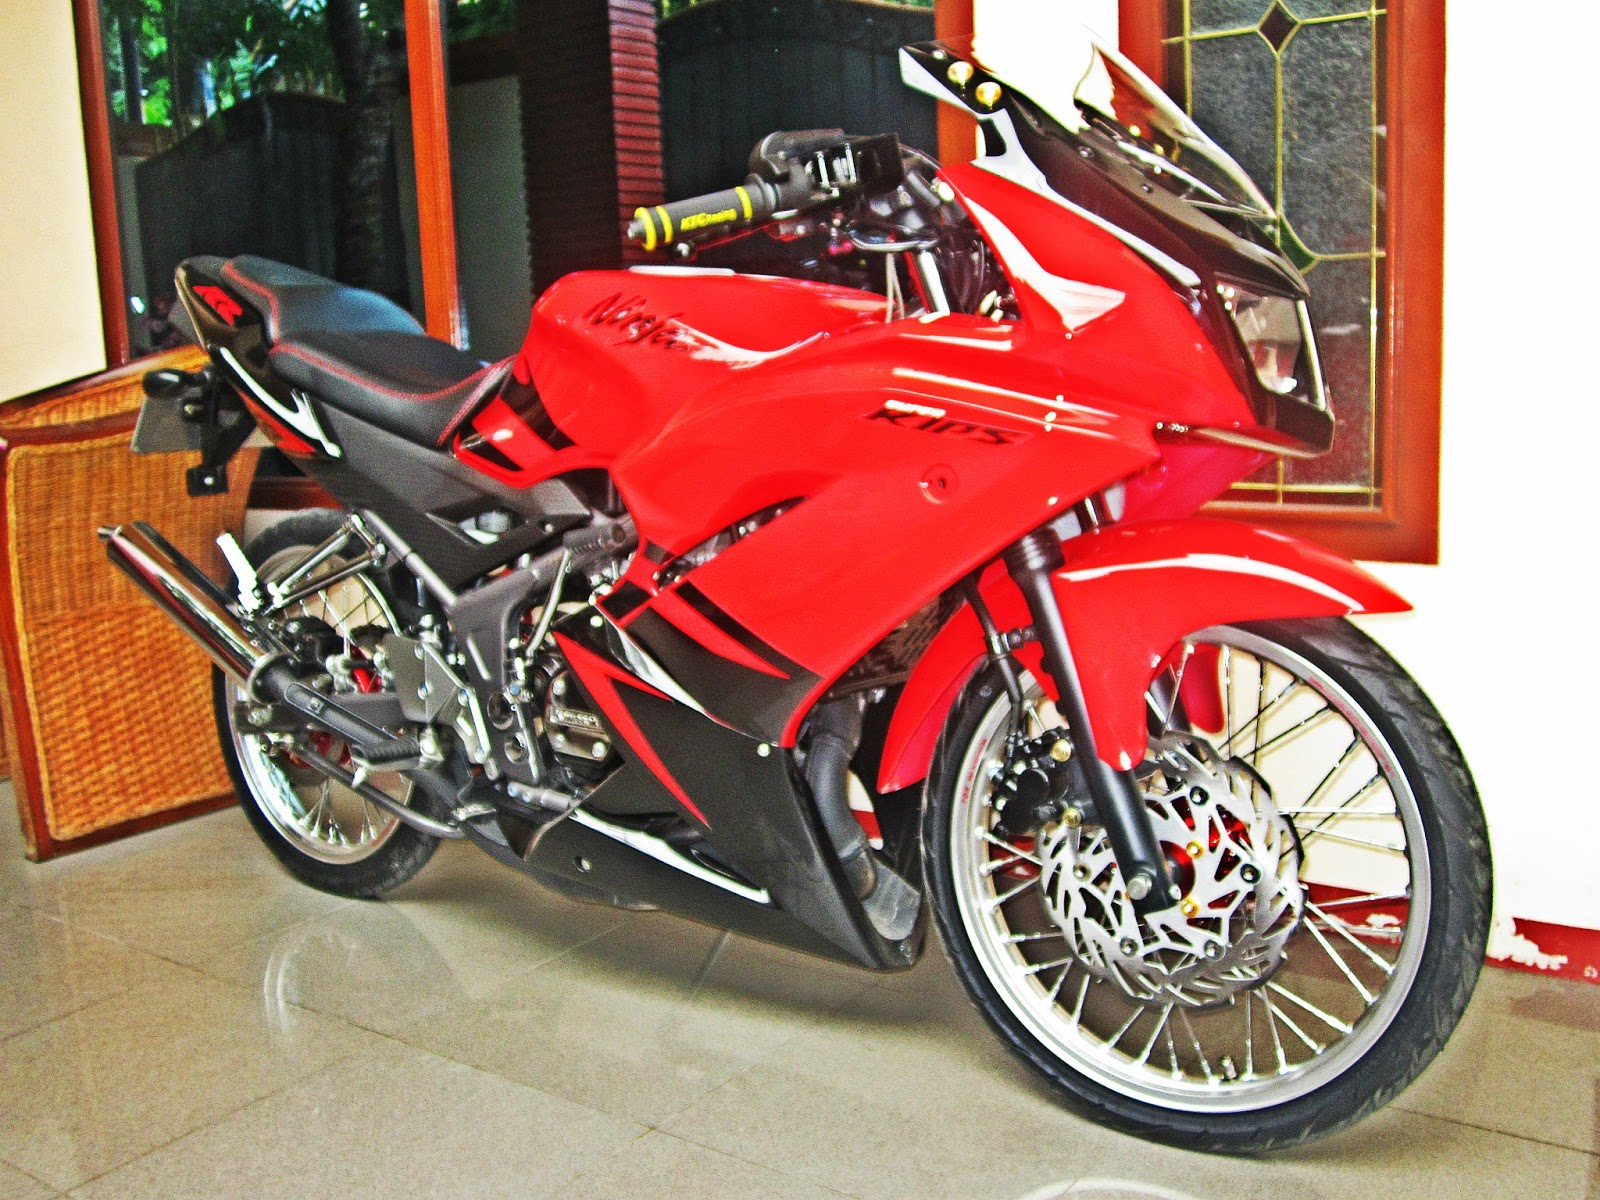 Modifikasi Ninja 150 Rr New